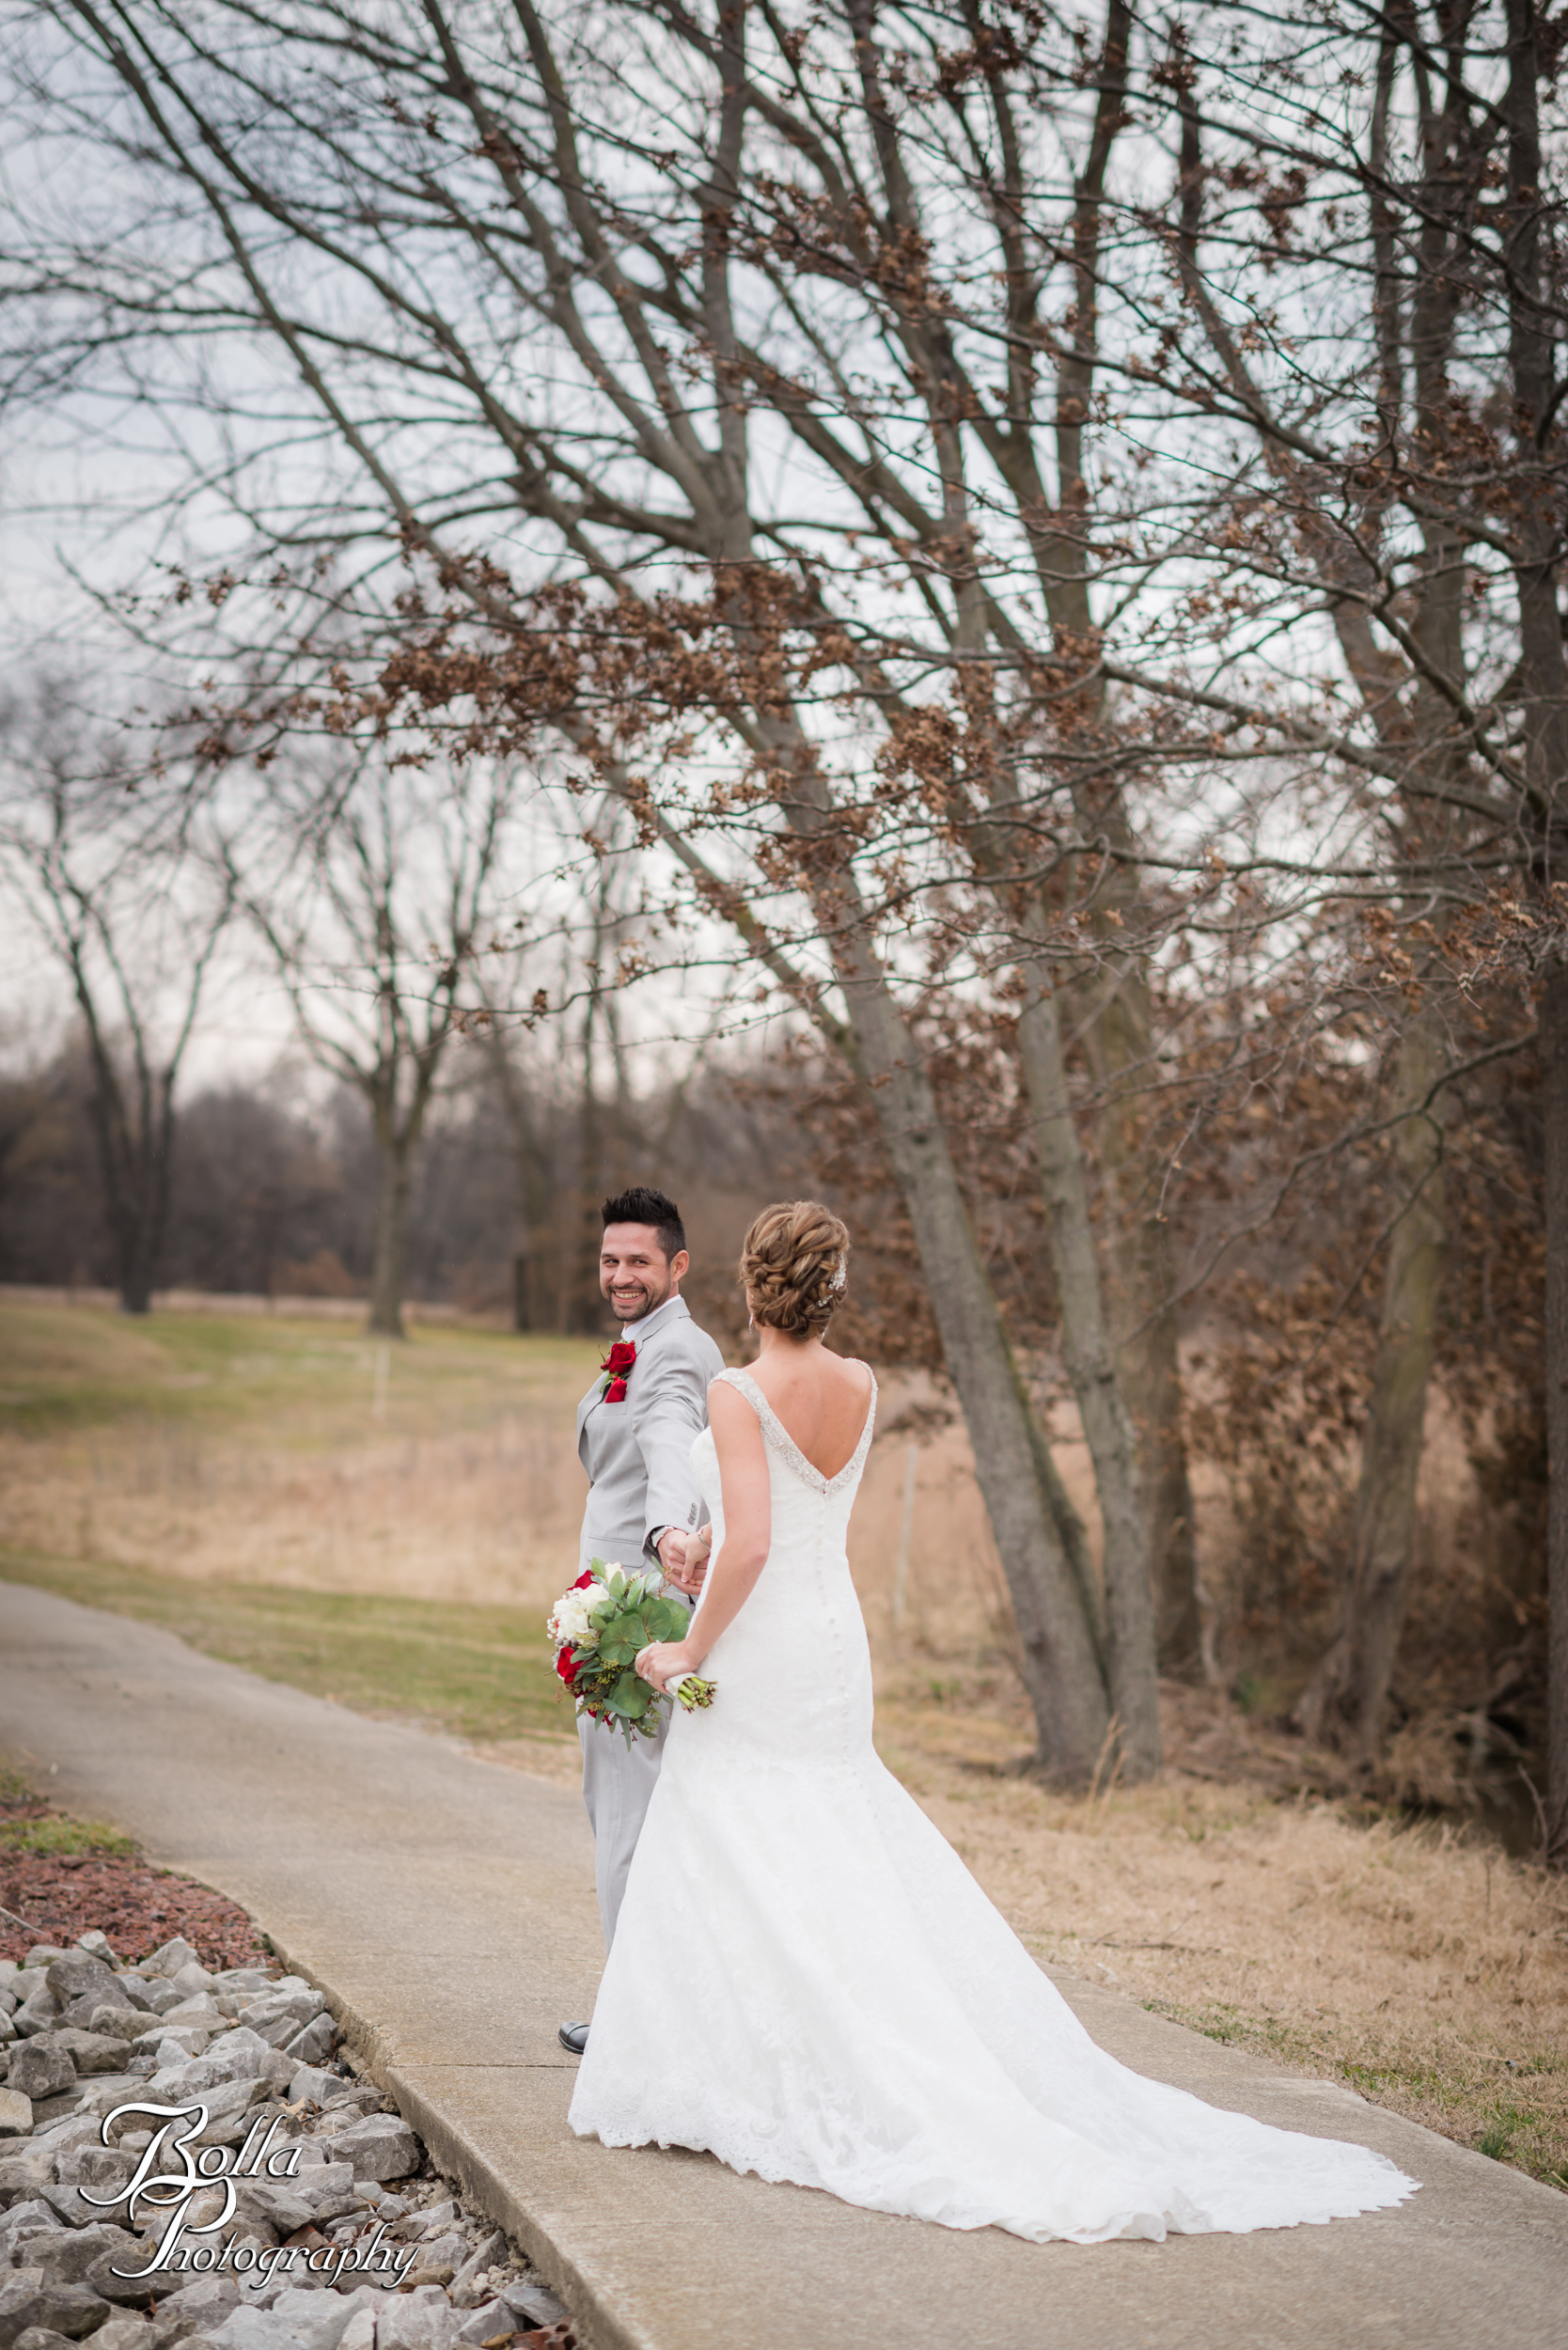 Bolla_photography_edwardsville_wedding_photographer_st_louis_weddings_highland_Allen_Warren_winter_red-0153.jpg